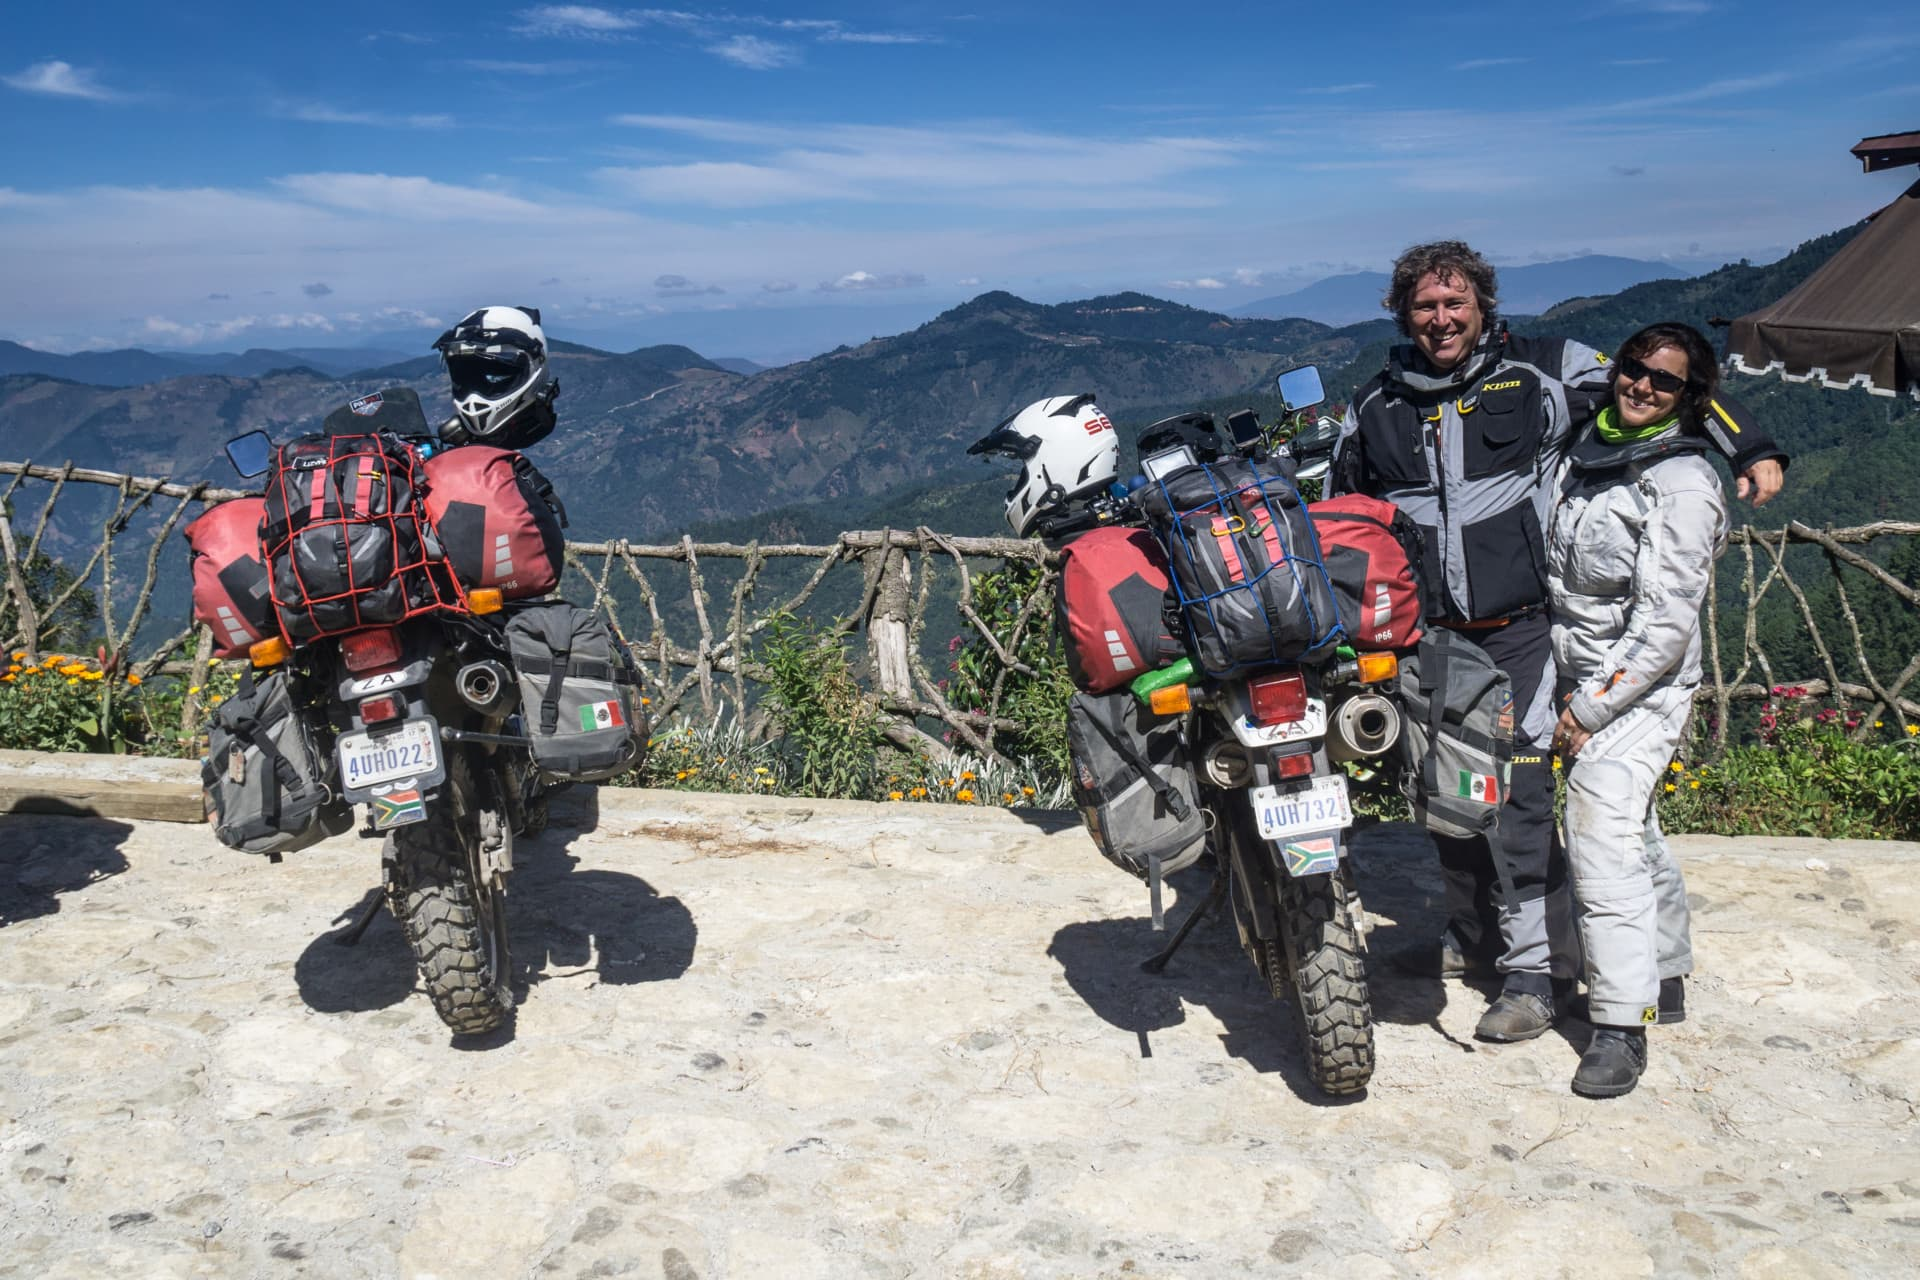 What's the best motorcycle for a long-distance travel?